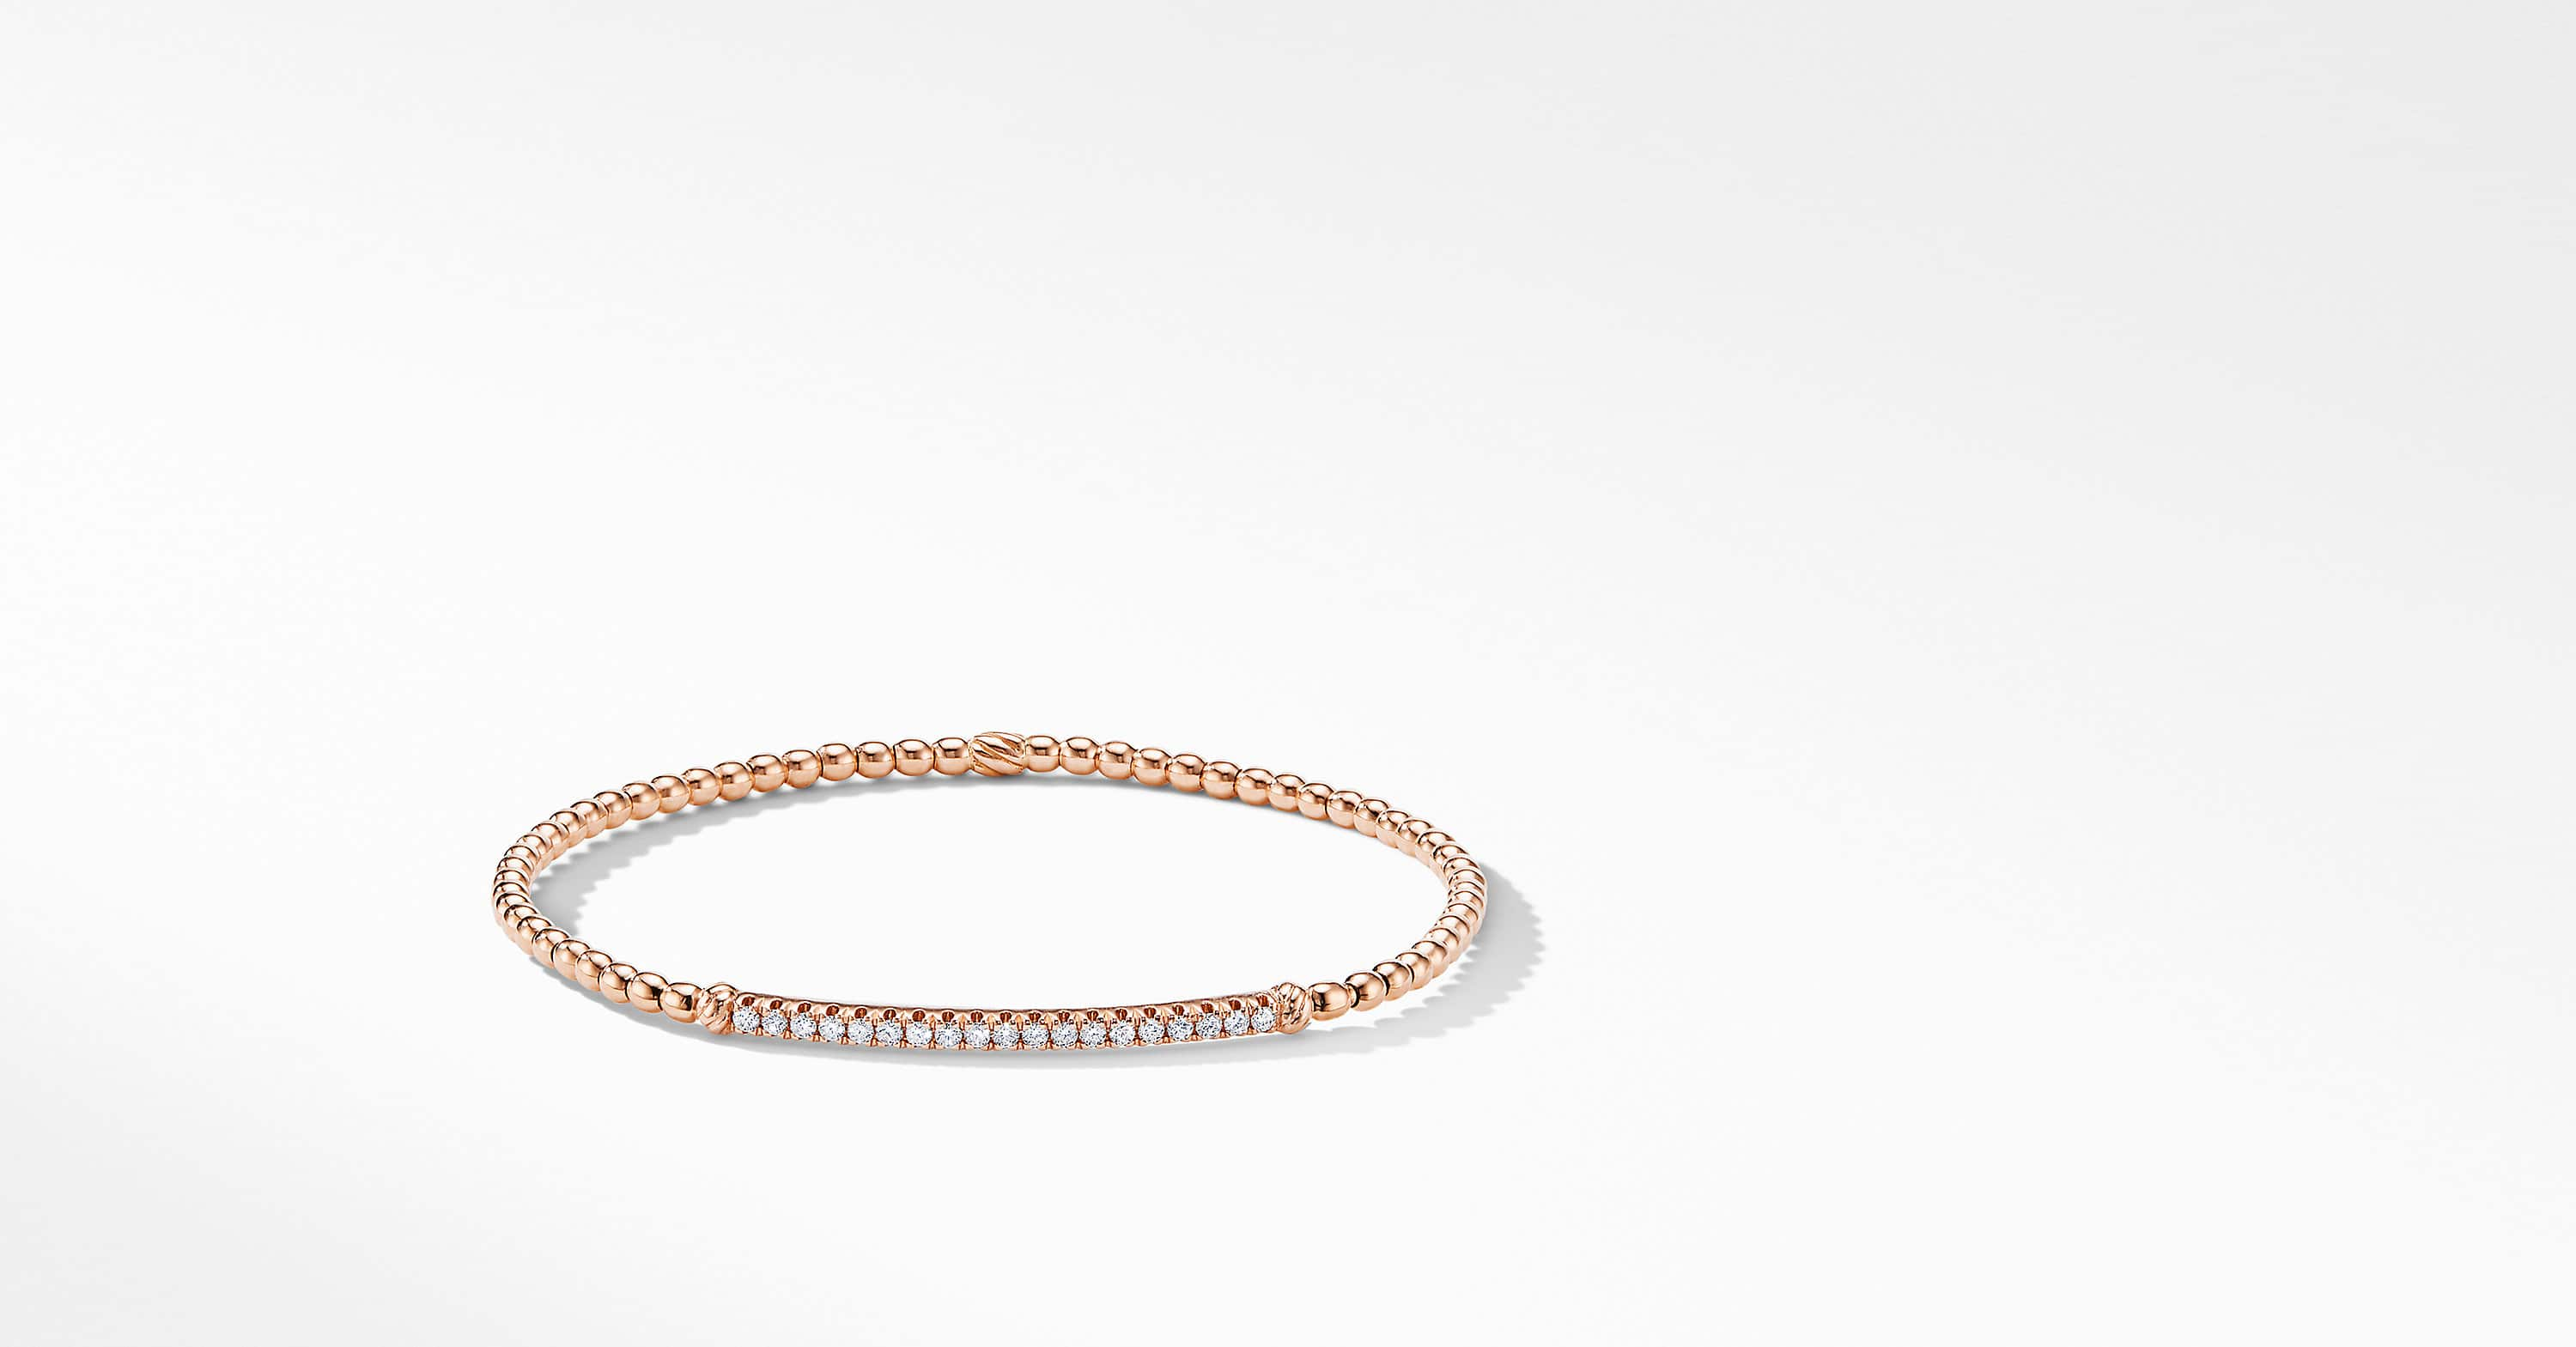 Petite Pavéflex Bracelet in 18K Rose Gold with Diamonds